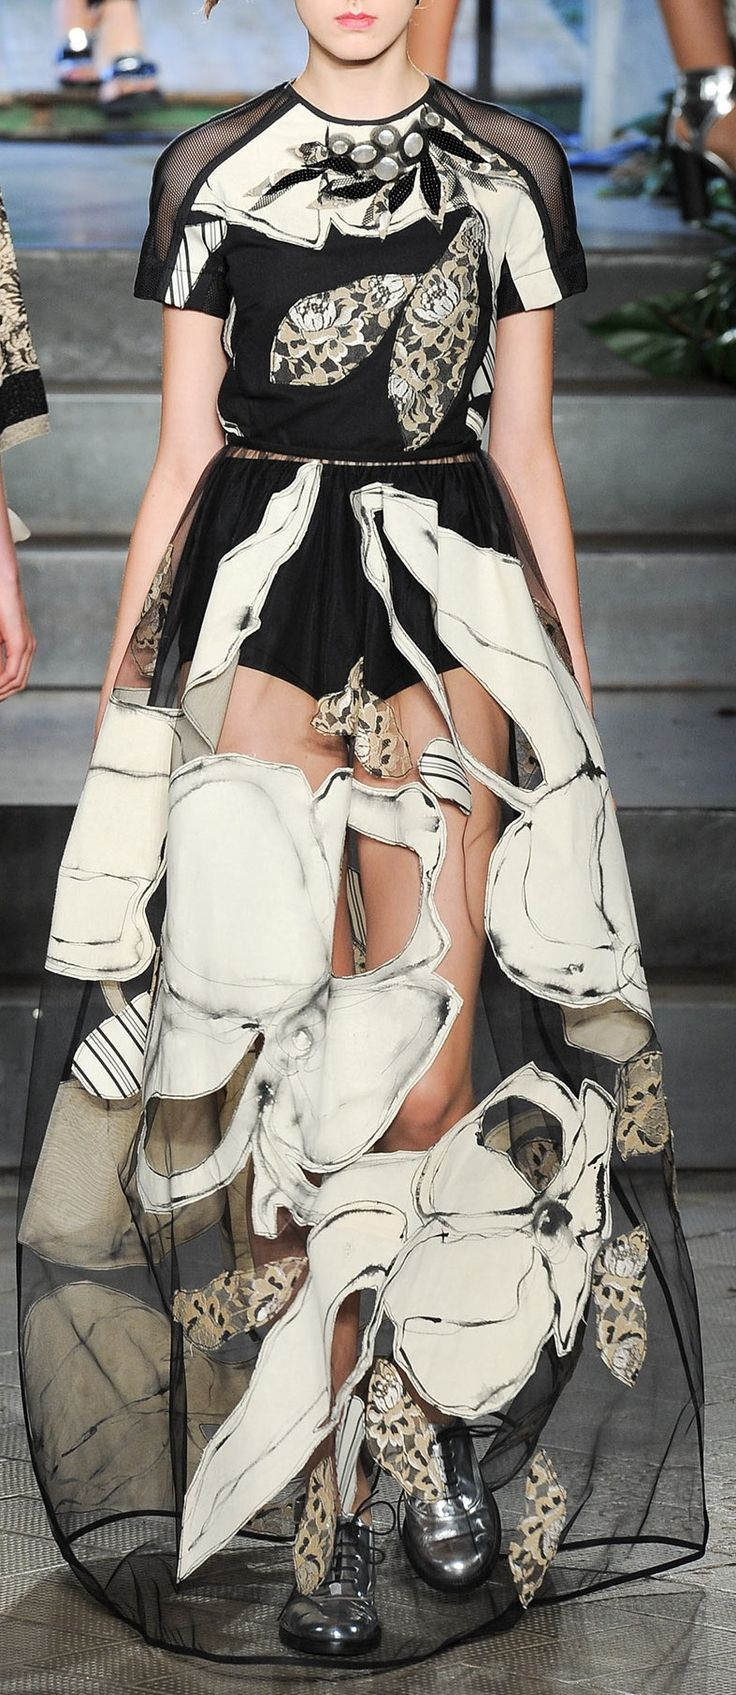 Antonio Marras | Spring '14 - big illustrated prints and fantastic detail & structure #fashion